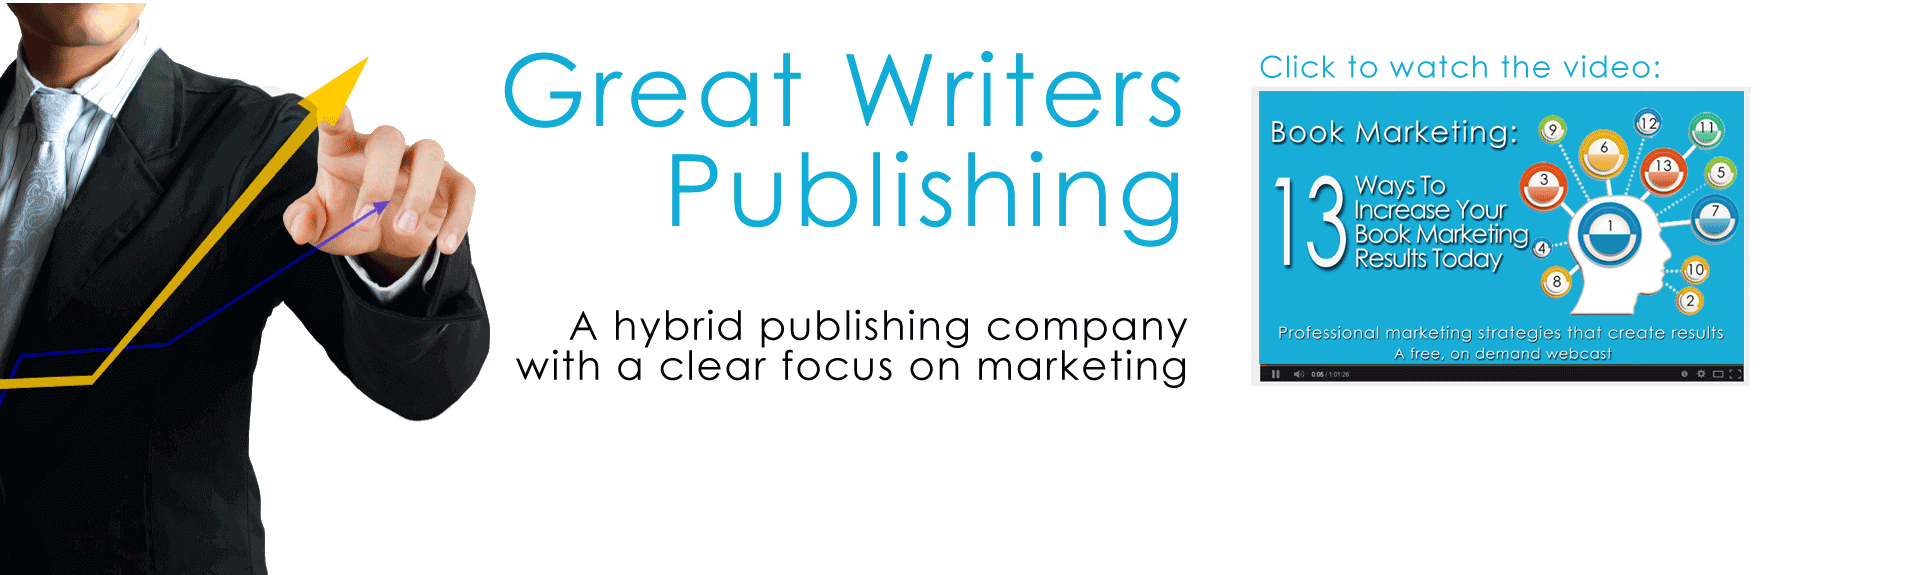 Great Writers Publishing 1